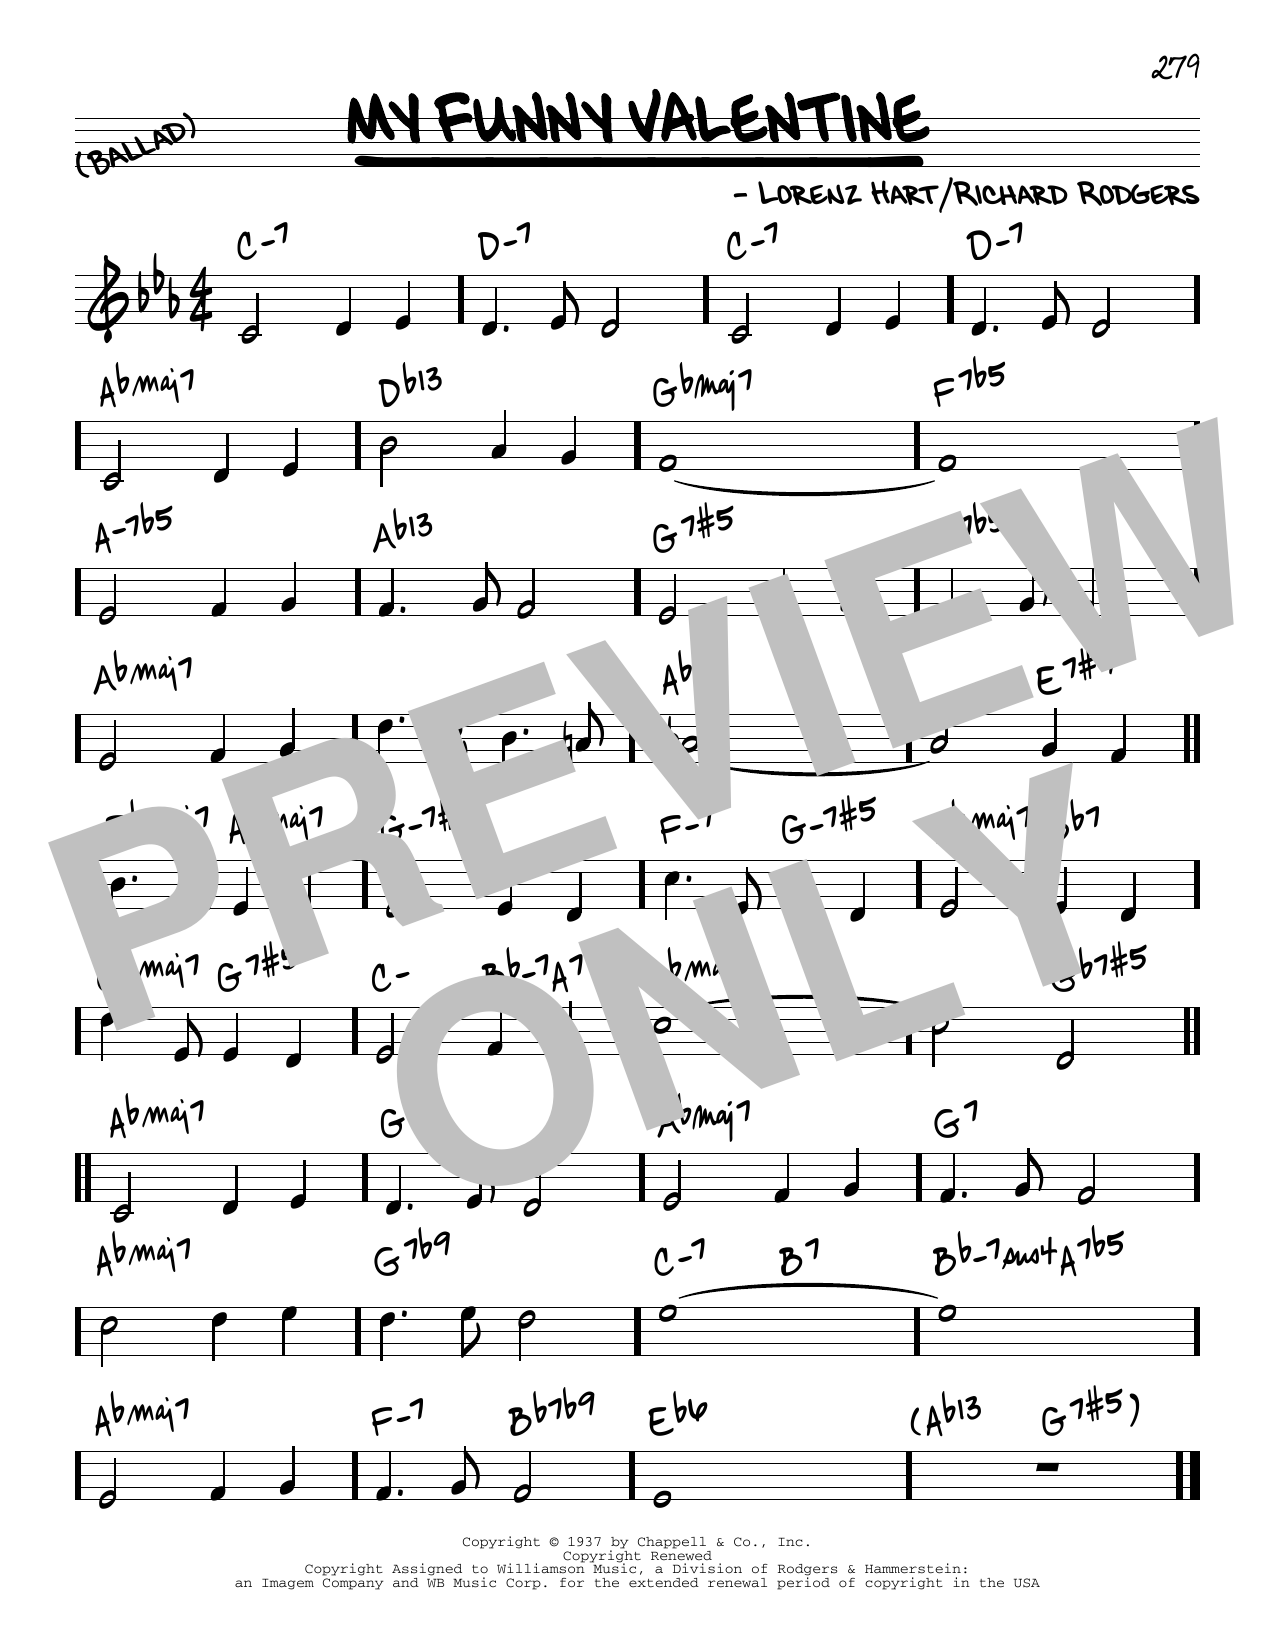 Rodgers & Hart My Funny Valentine [Reharmonized version] (from Babes In Arms) (arr. Jack Grassel) sheet music notes printable PDF score